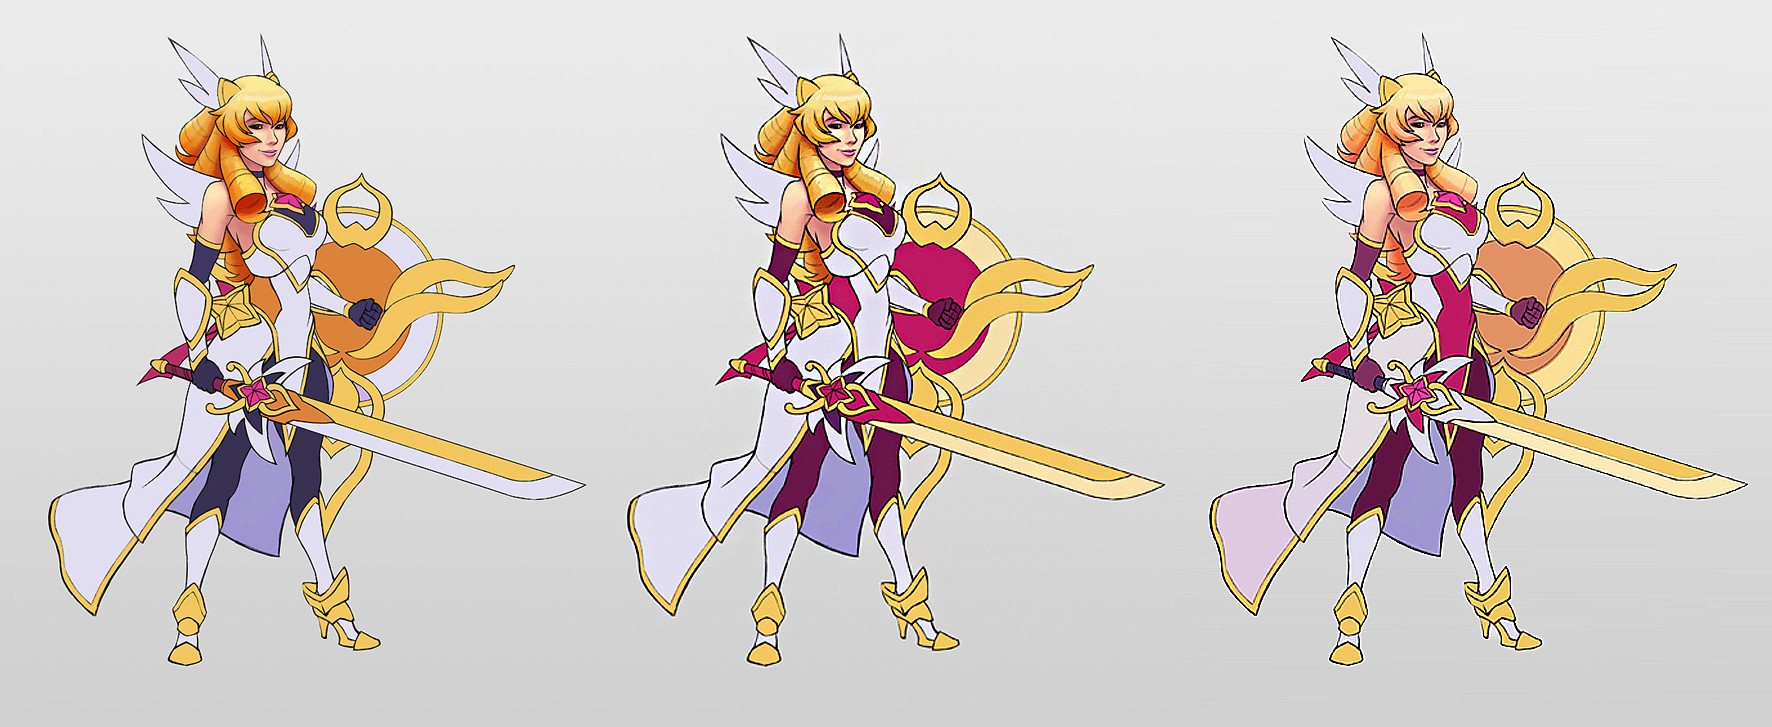 Artstation Lol Skin Concept Star Guardian Leona Thorsten Erdt